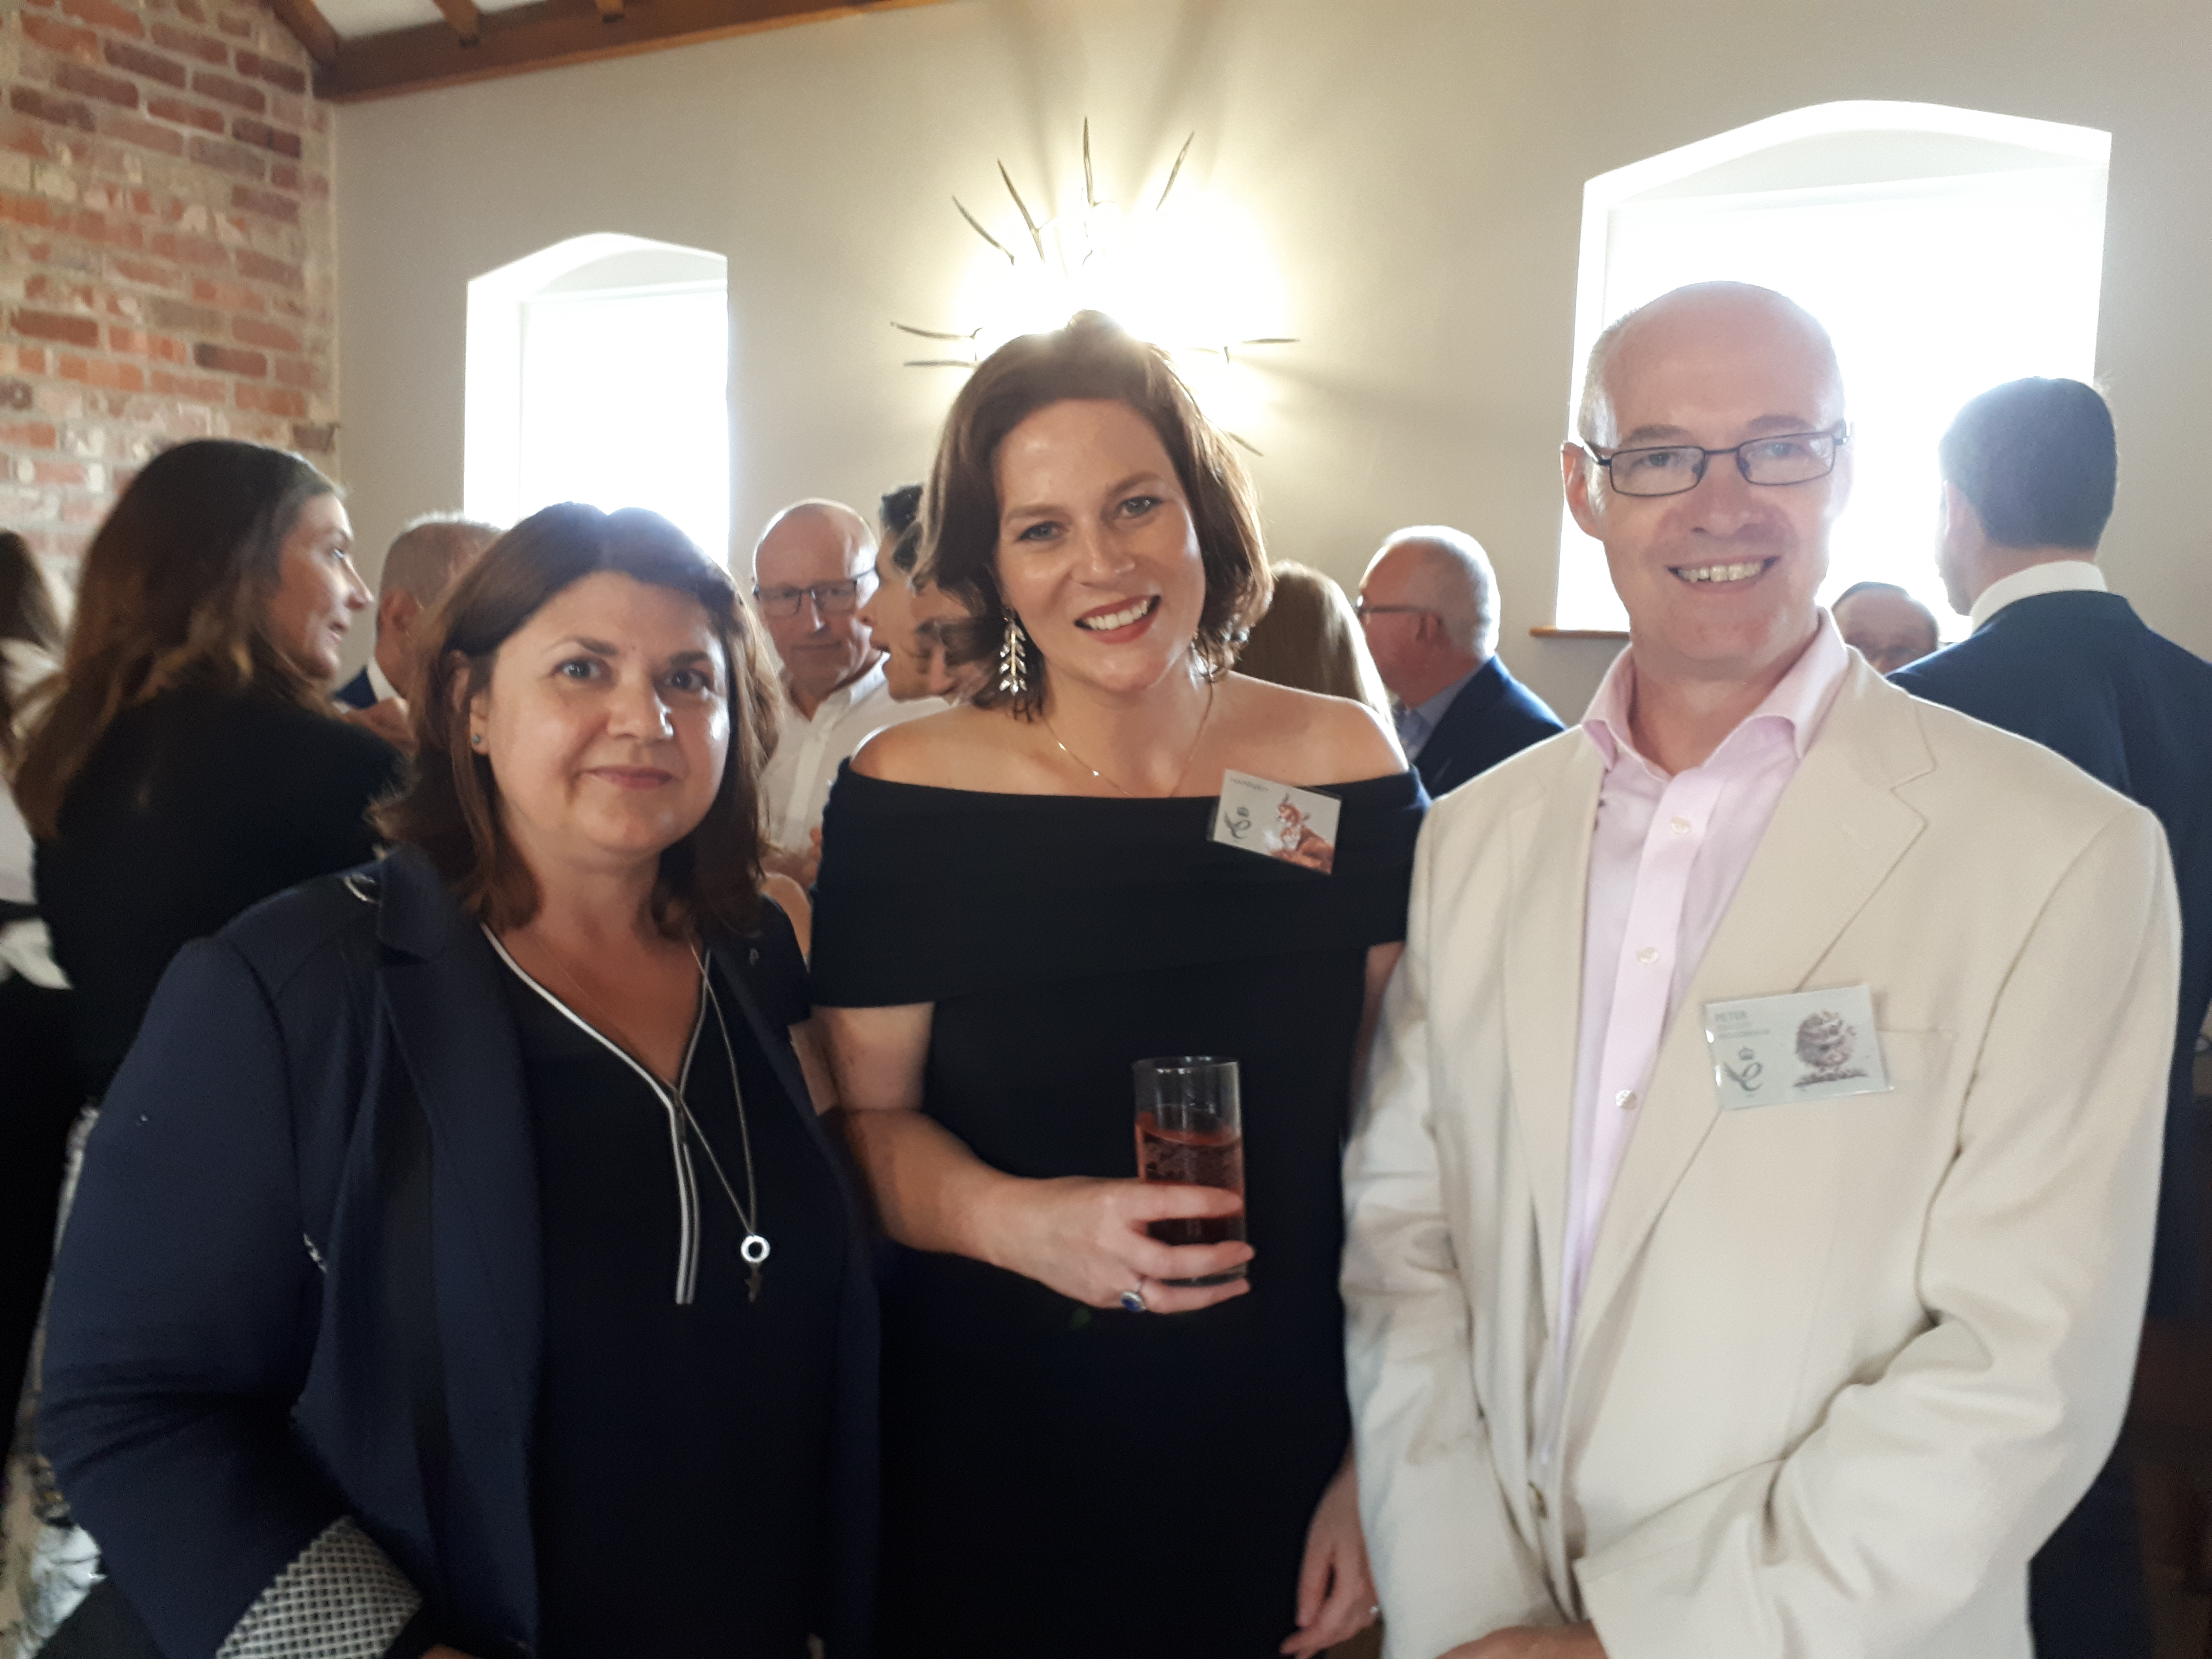 Above: Dzodzo Gallery's Pete and Jelena (right) Whiteman with Wrendale's Hannah Dale.